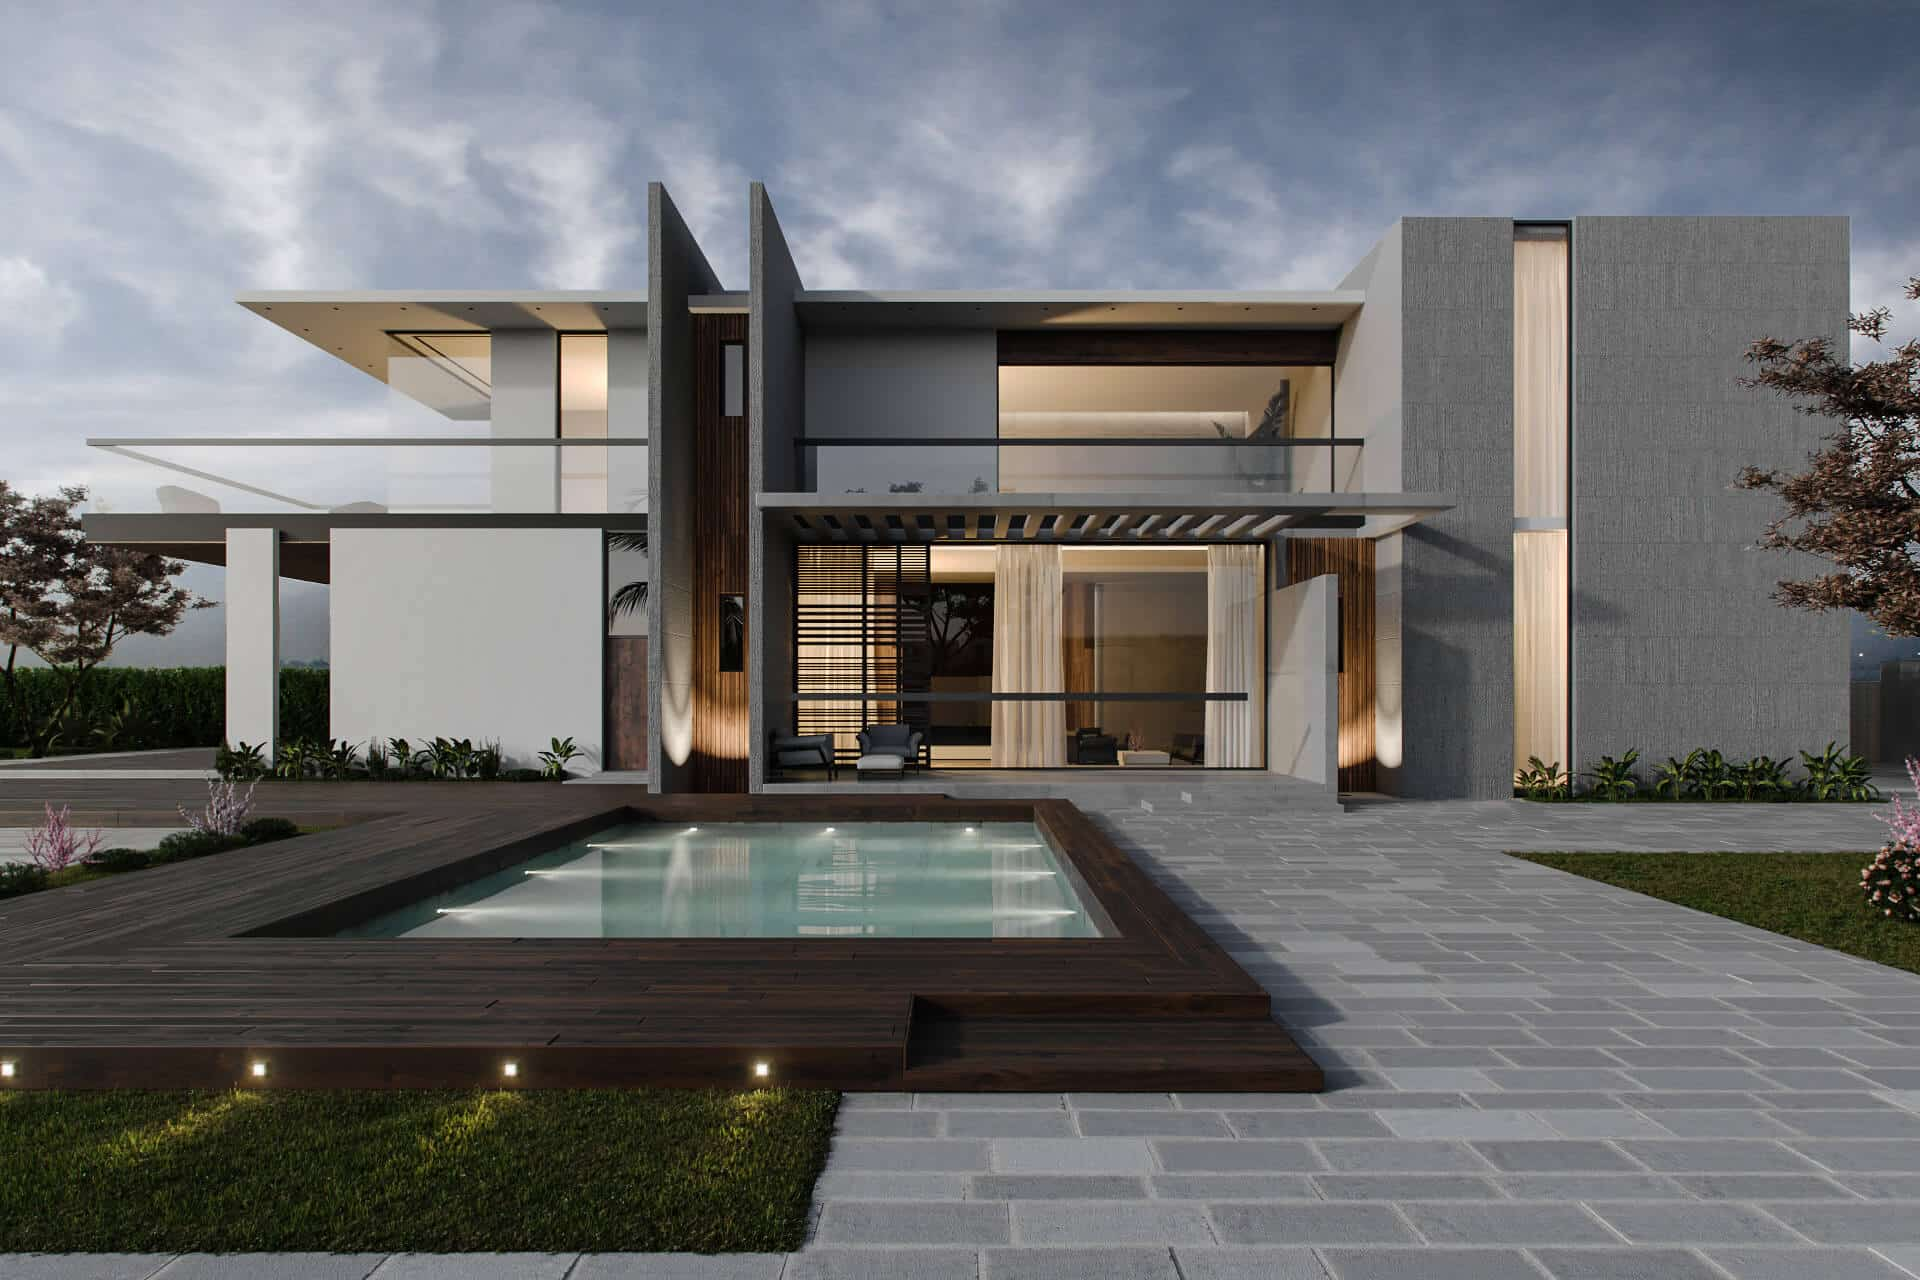 Modern Villa Exterior 3d Visualization By Archicgi